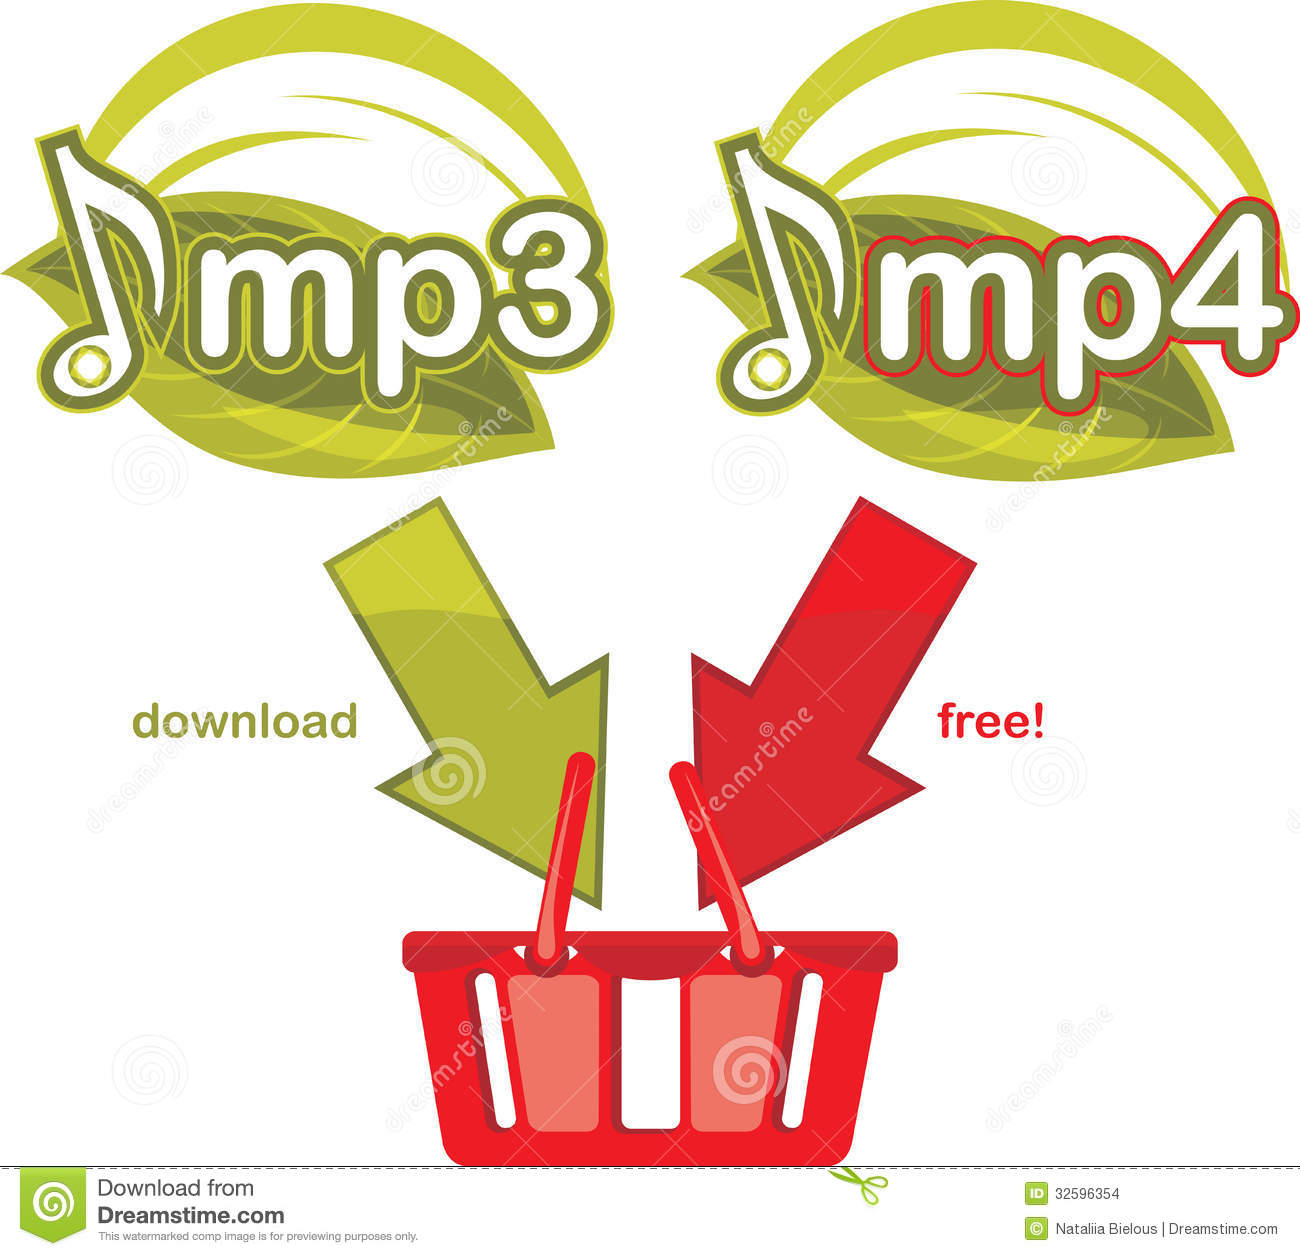 Free Nature Sounds Mp